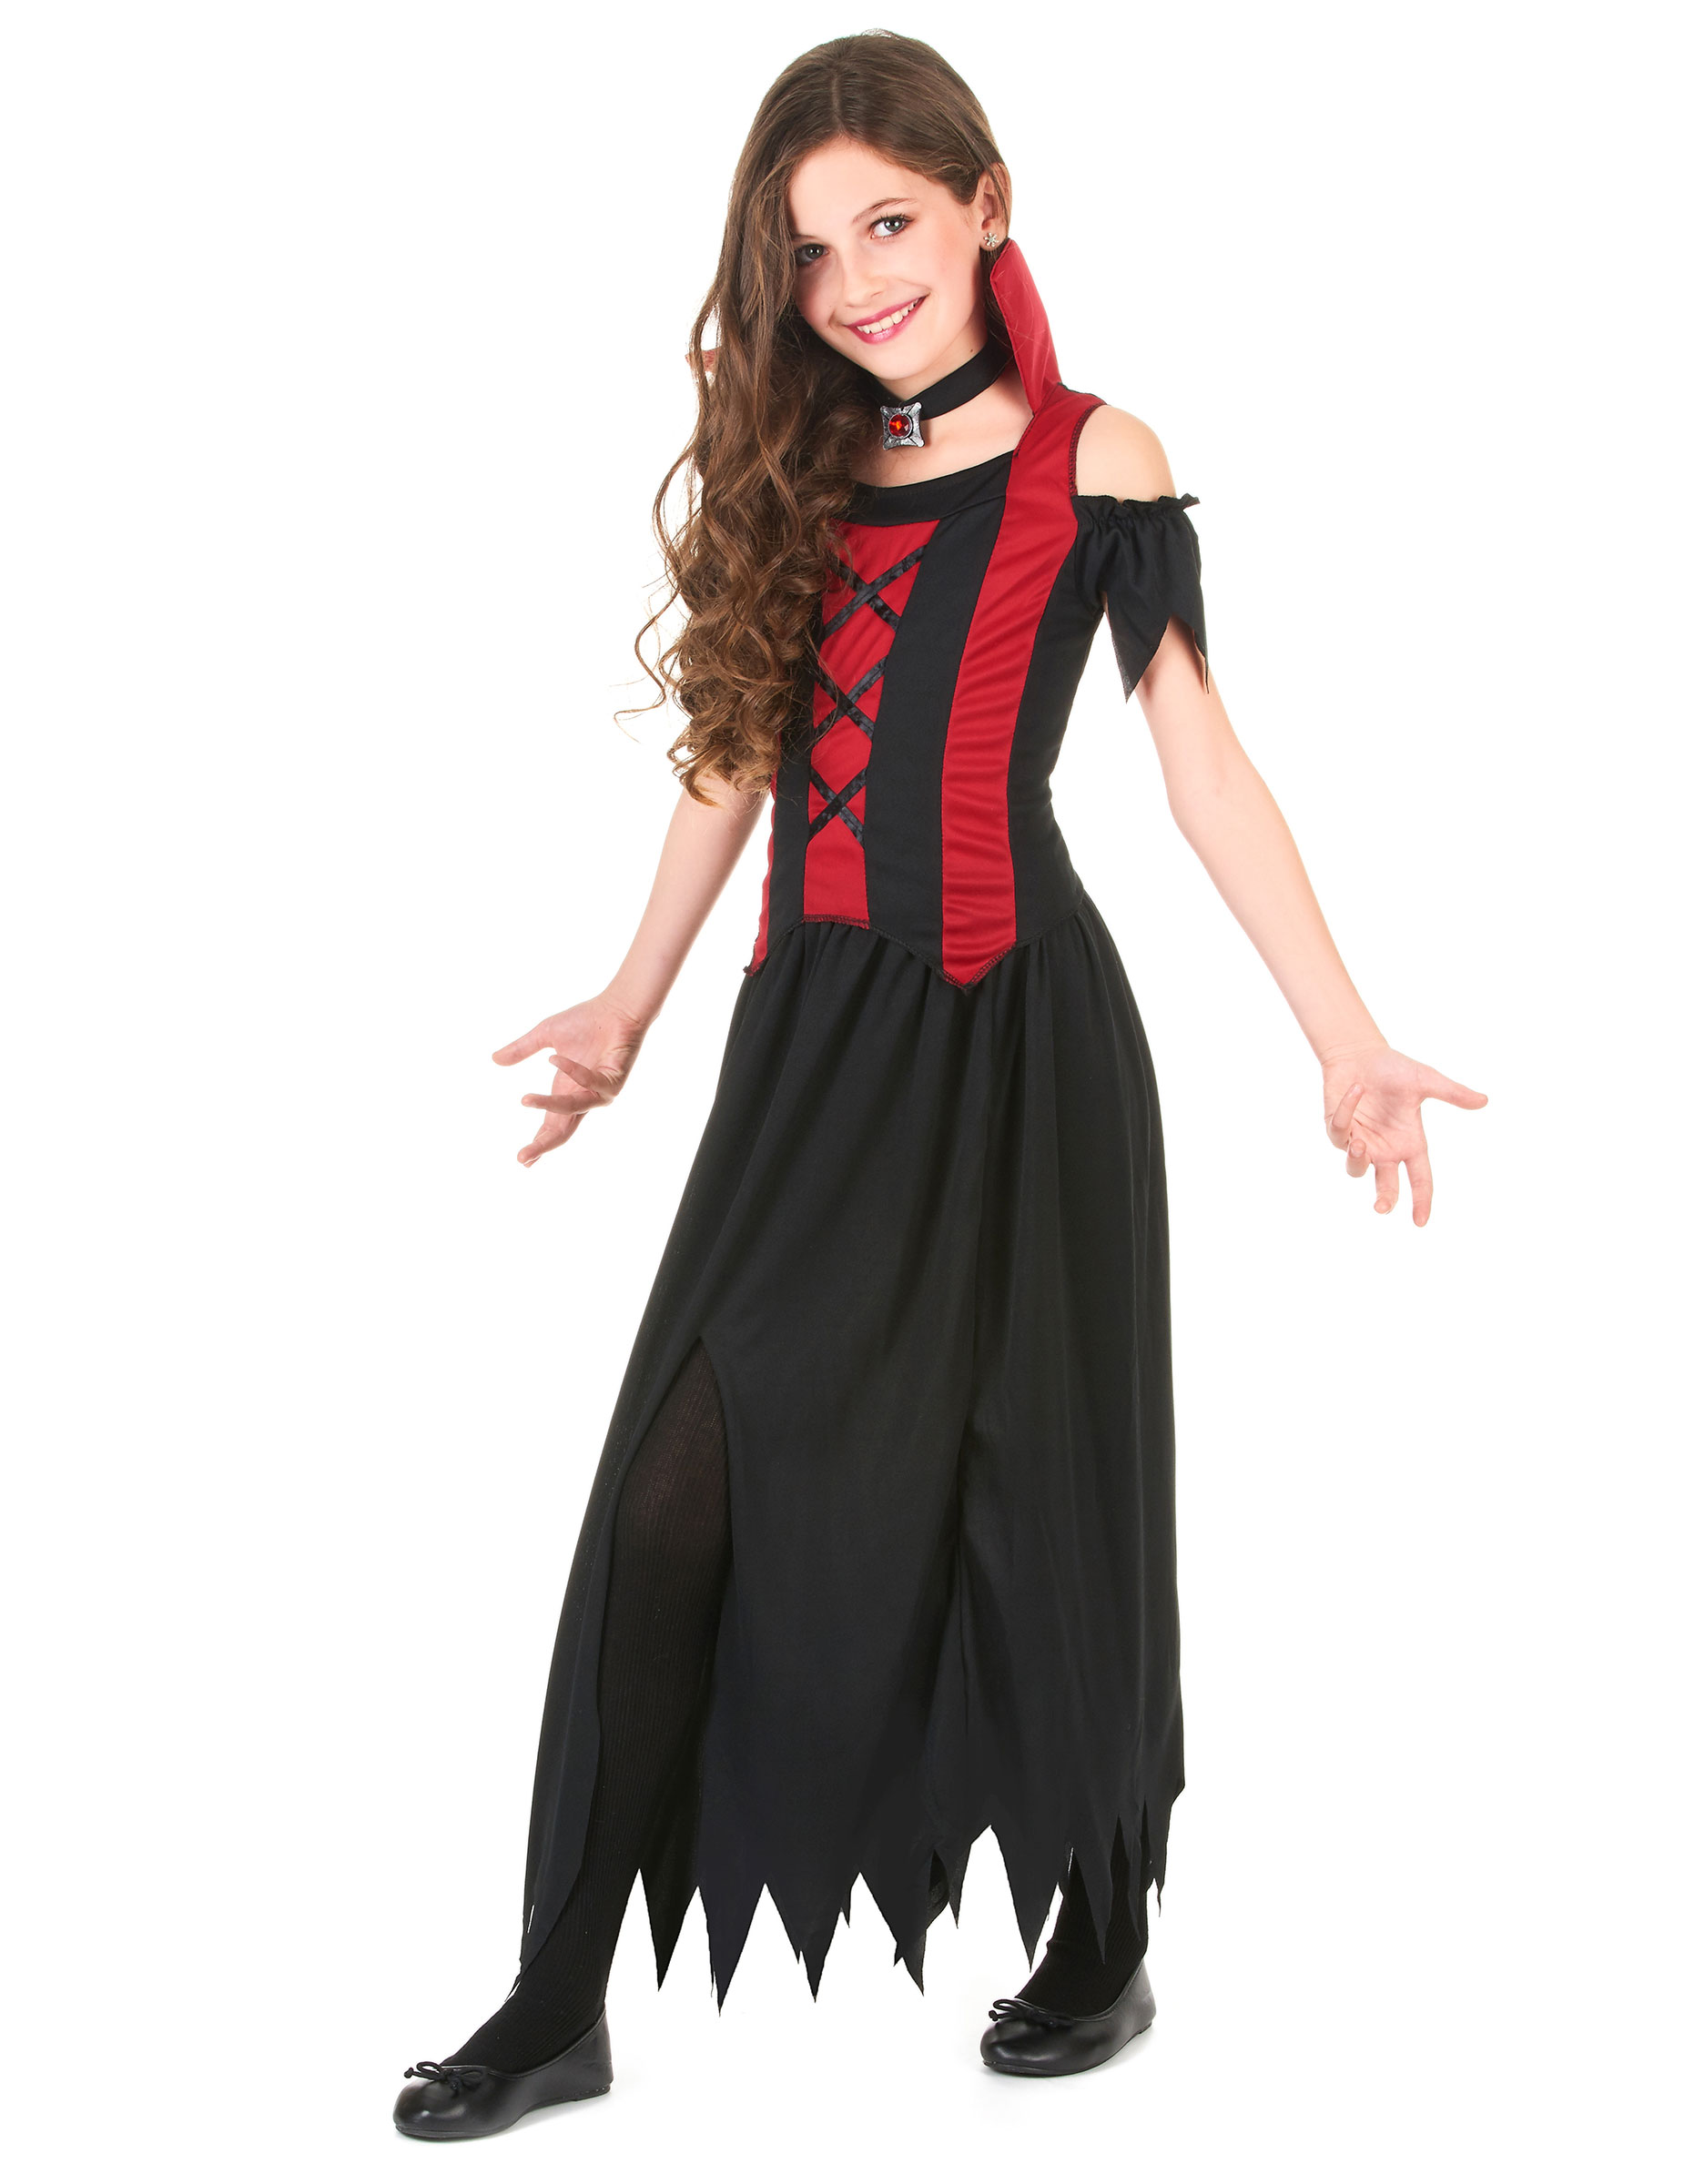 costume da vampiro per bambina halloween costumi bambini. Black Bedroom Furniture Sets. Home Design Ideas